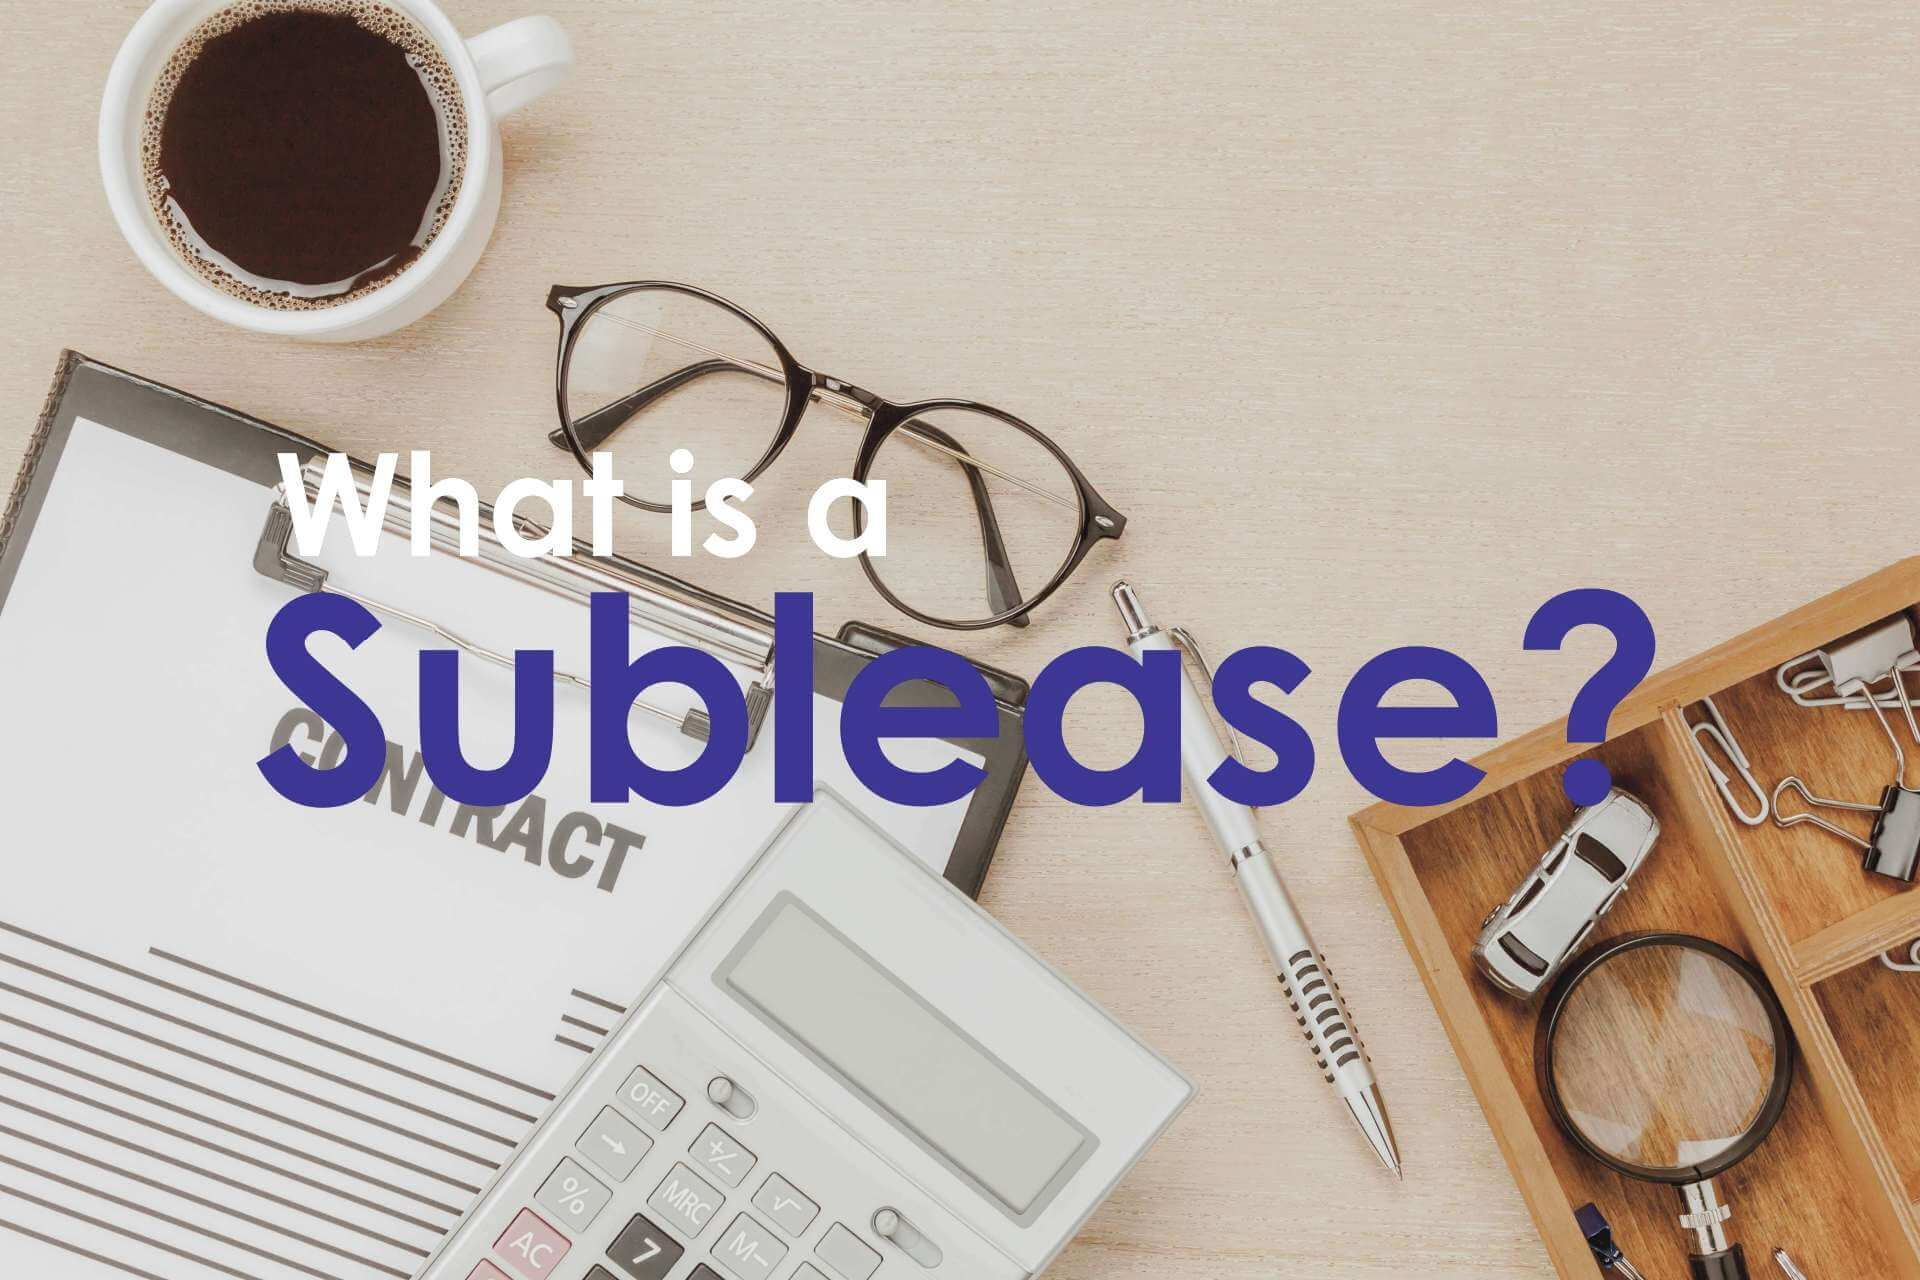 What-is-sublease-an-apartment